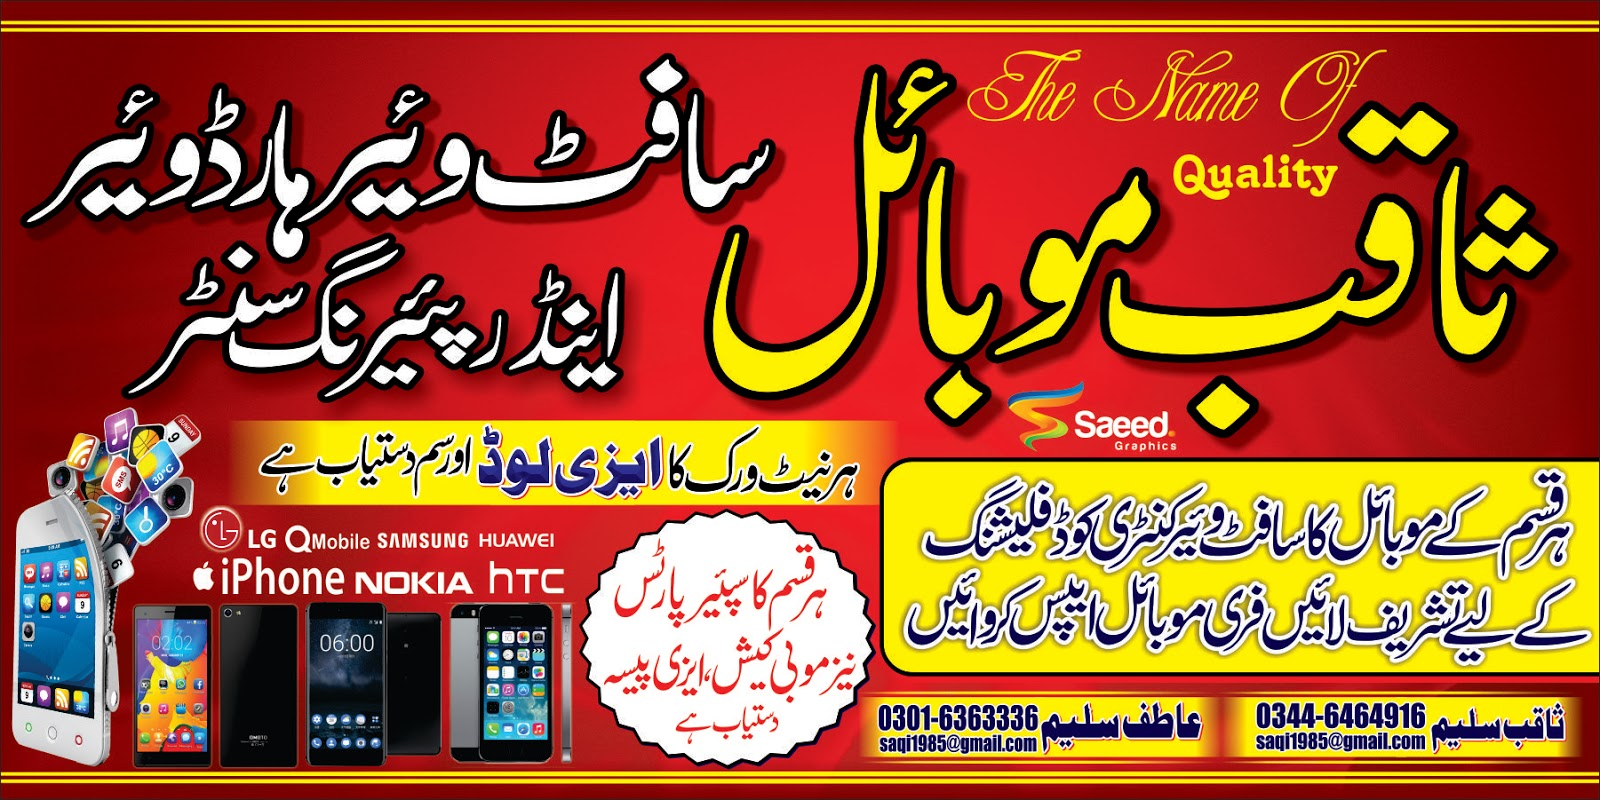 Saeed Graphic Mobile Shop New Design